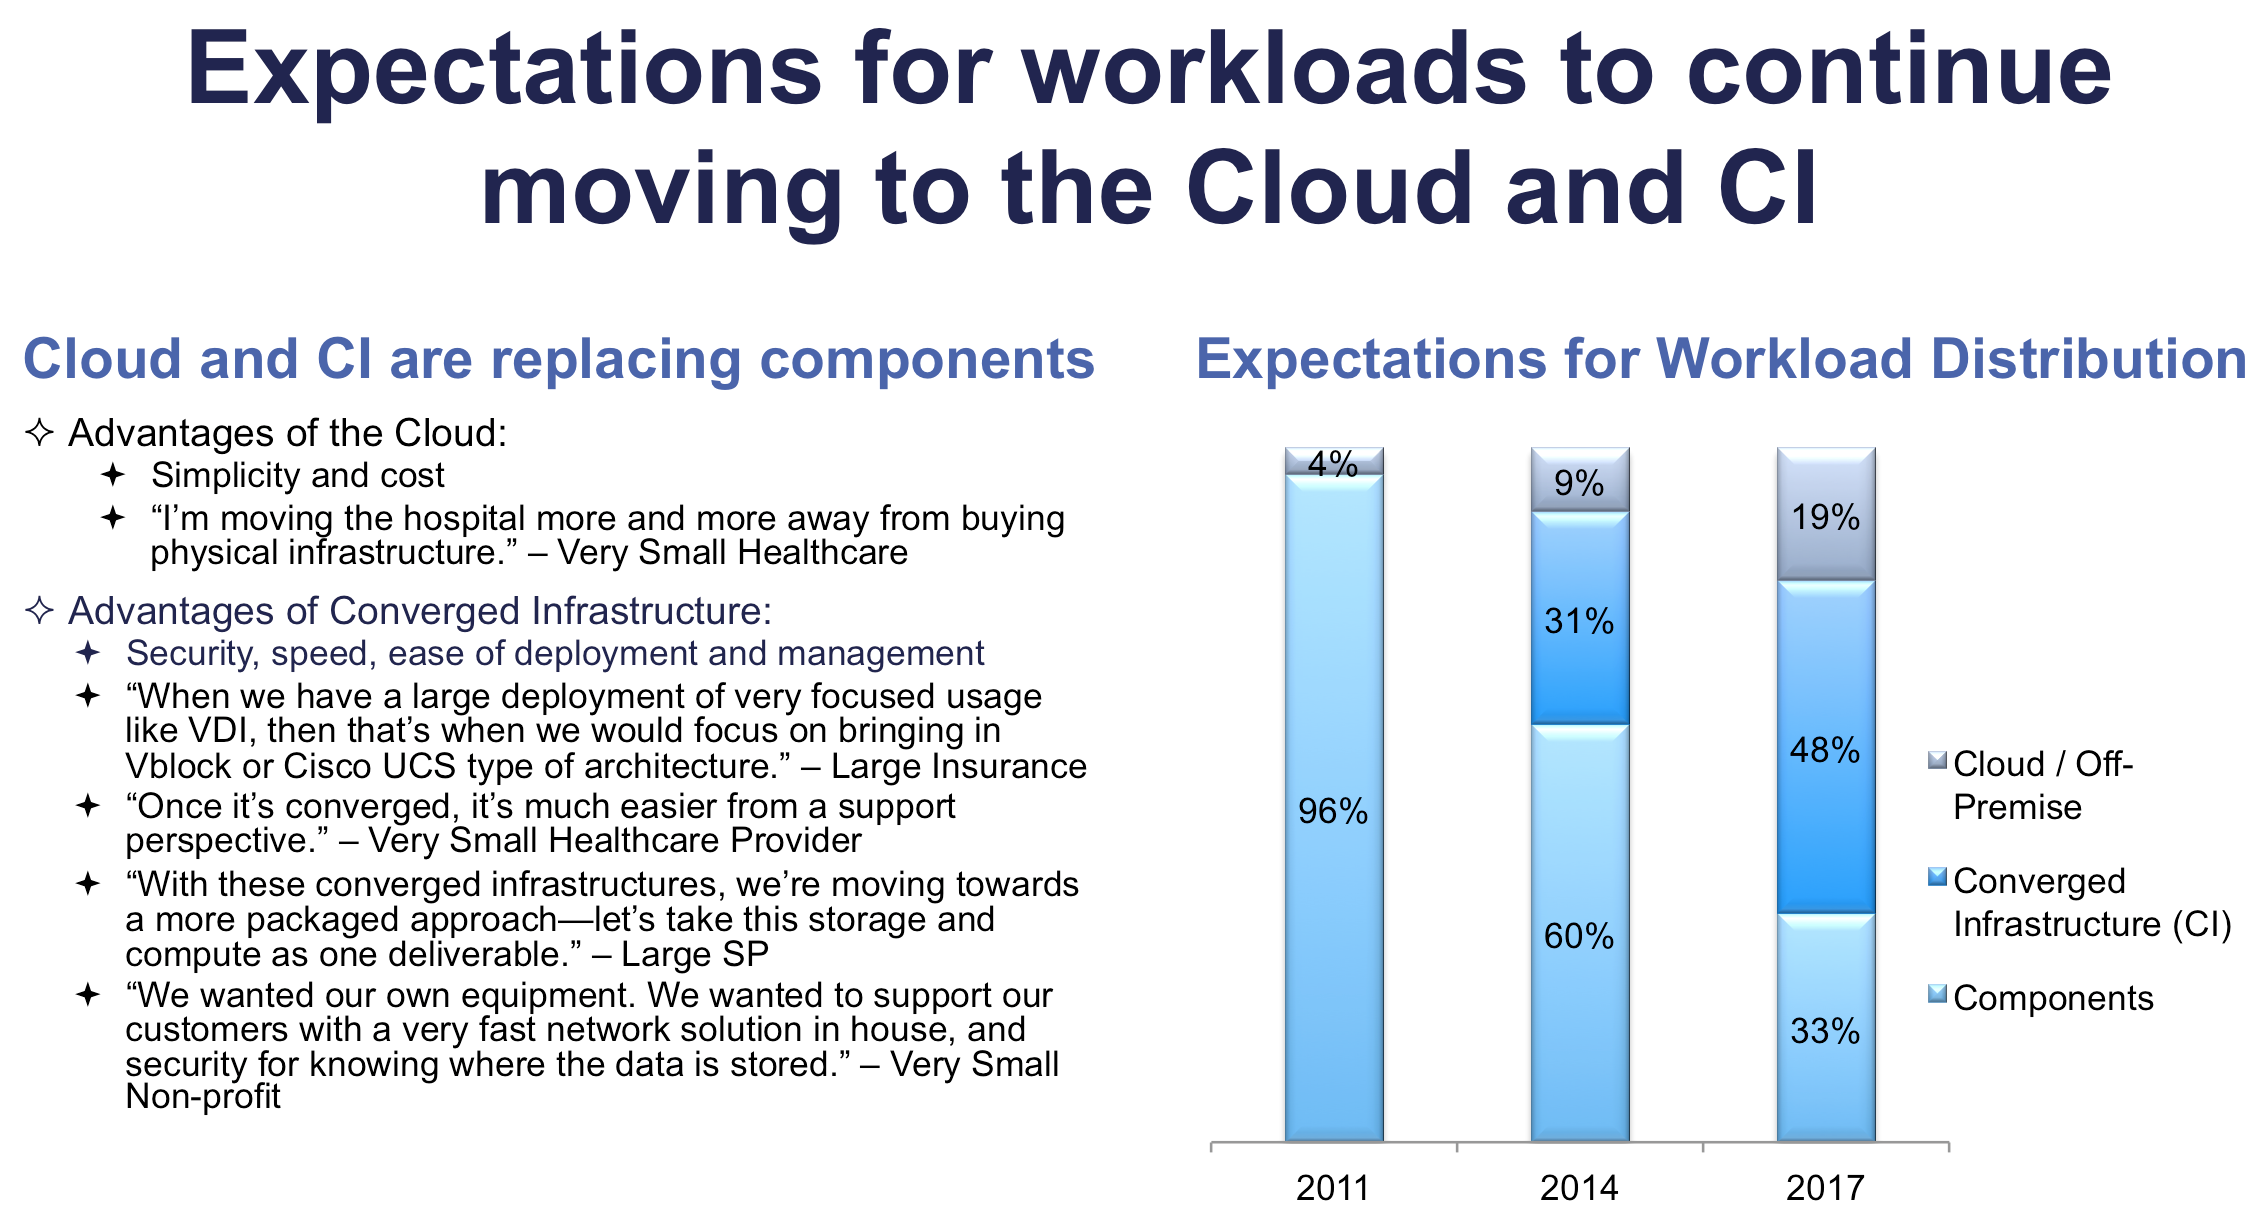 Investments in Converged Infrastructure expected to grow rapidly, primarily at the expense of components.